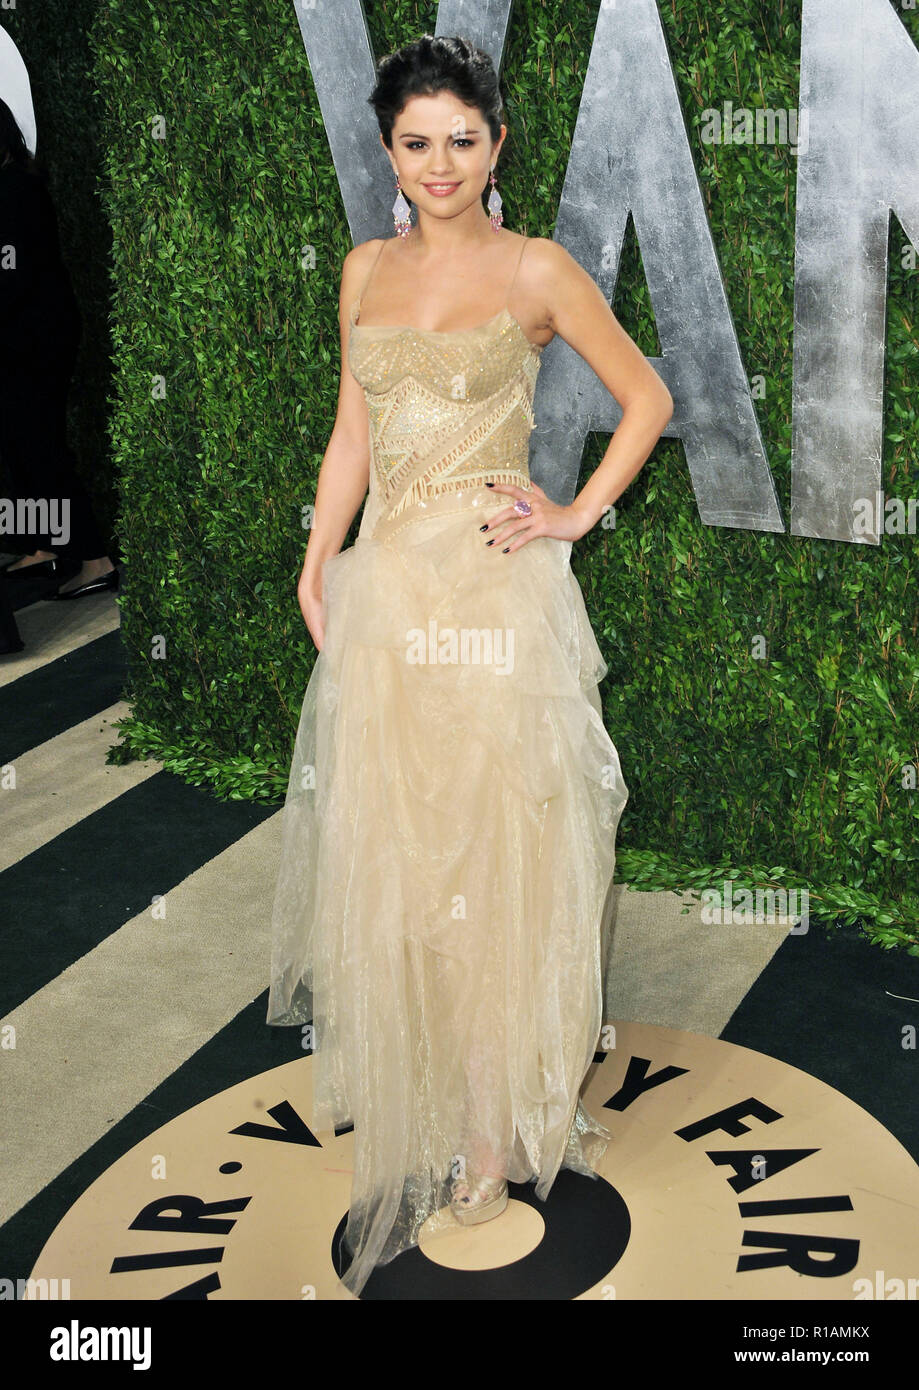 Selena Gomez 611 At The Vanity Fair 2013 Oscar Party At The Sunset Tower In Los Angeles Selena Gomez 611 Event In Hollywood Life California Red Carpet Event Usa Film Industry Celebrities